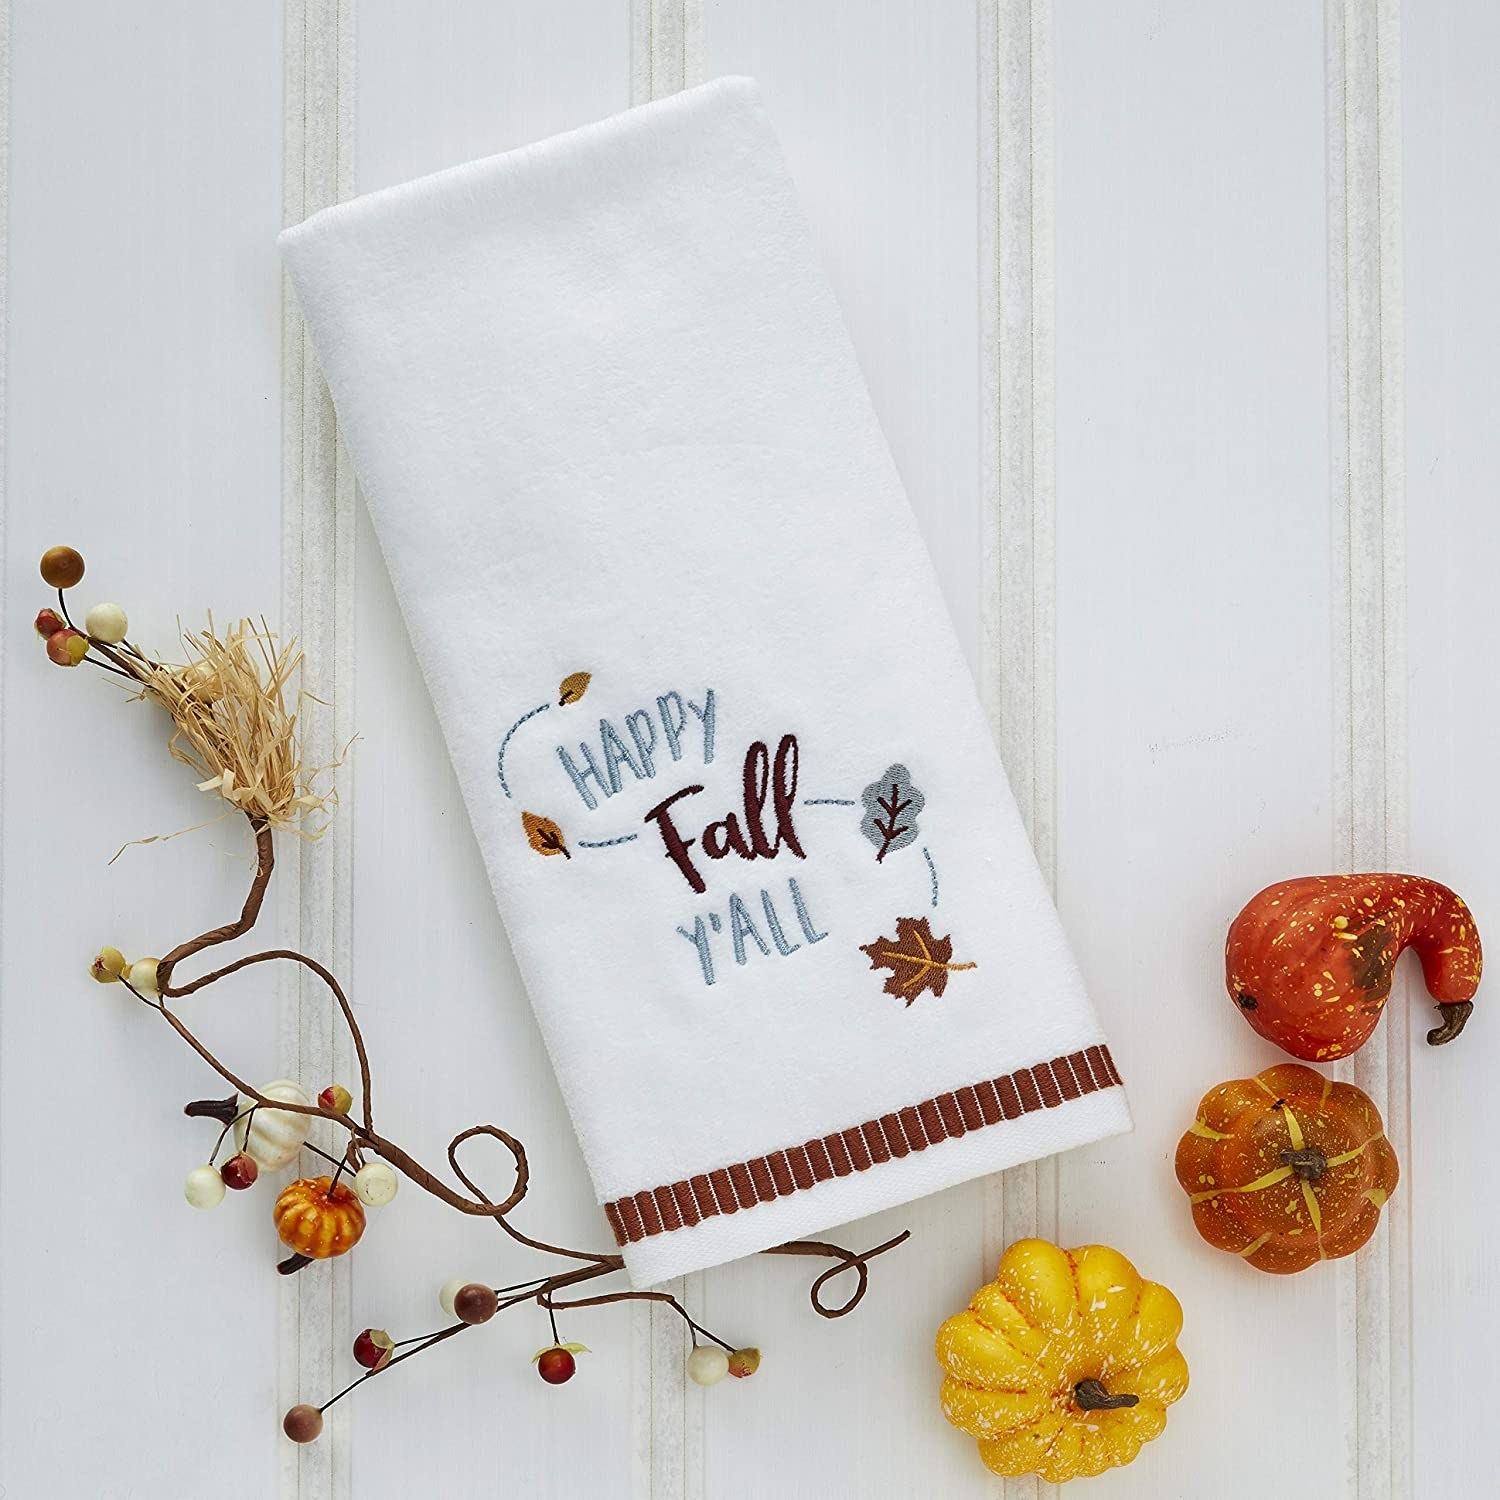 """White hand towels with the words """"Happy Fall Y'all"""" embroidered on in blue and brown"""